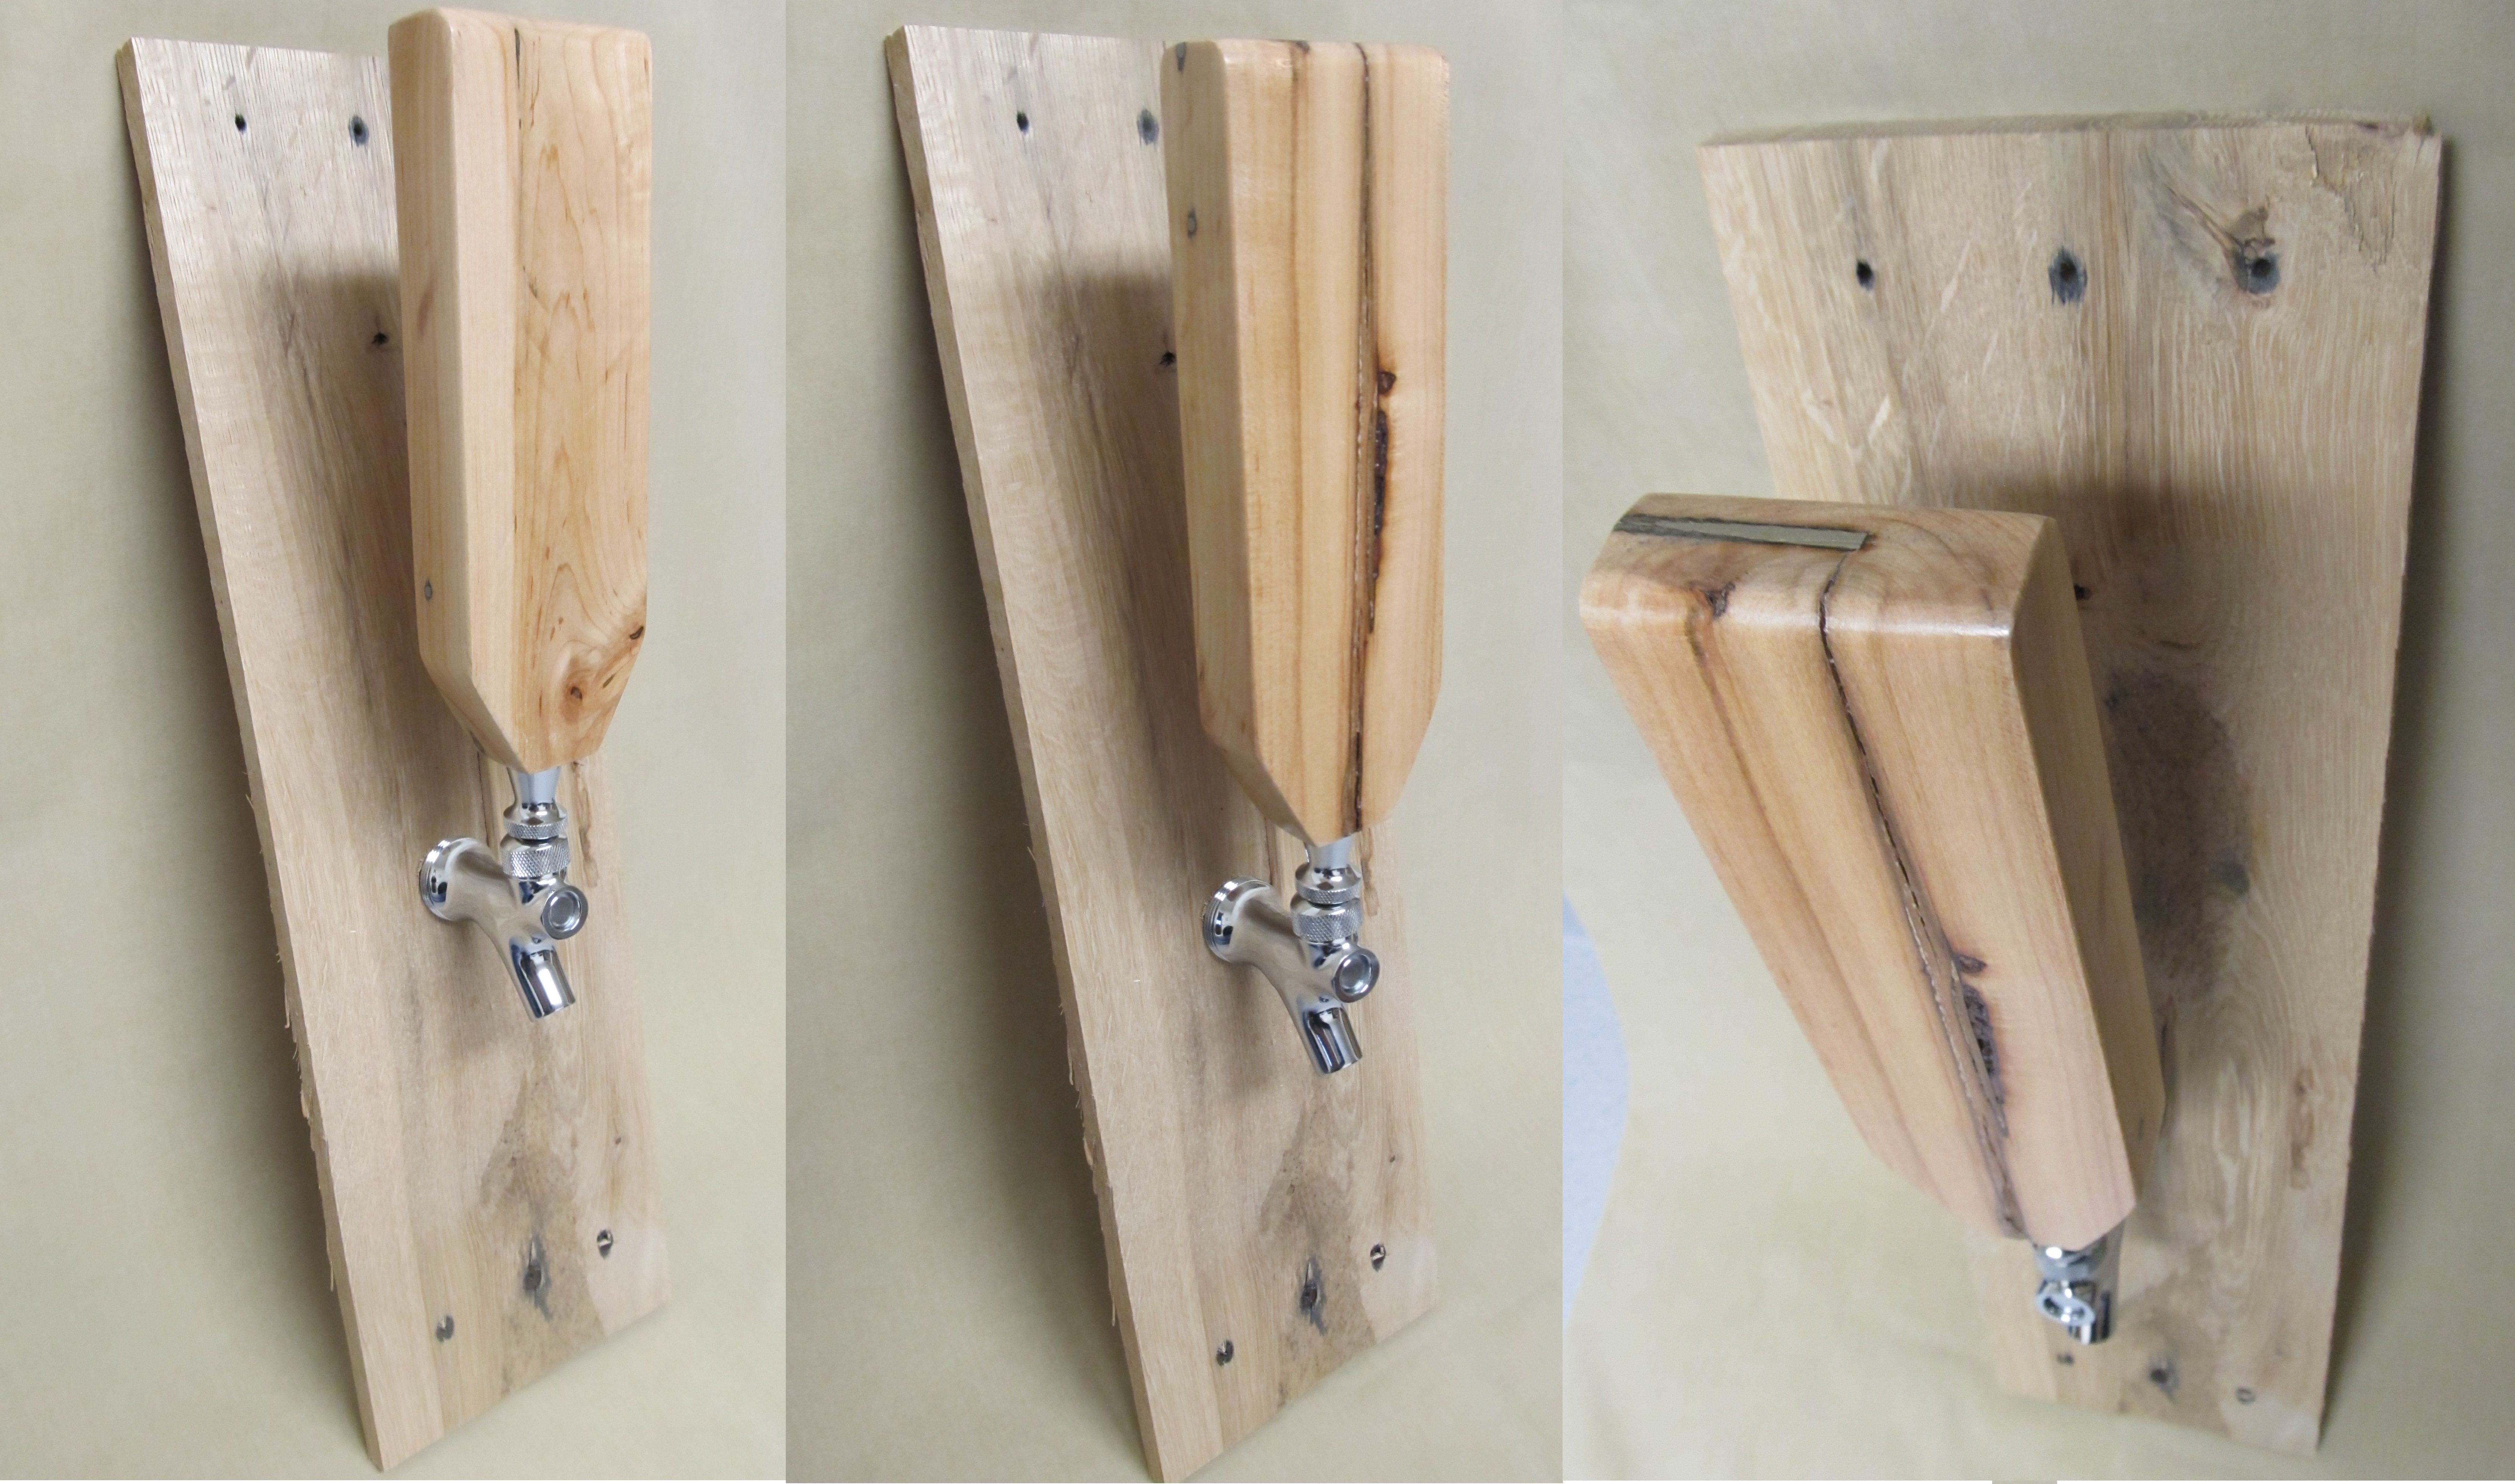 Order Now Beer Tap Handles From Recycled Pallet WoodMore